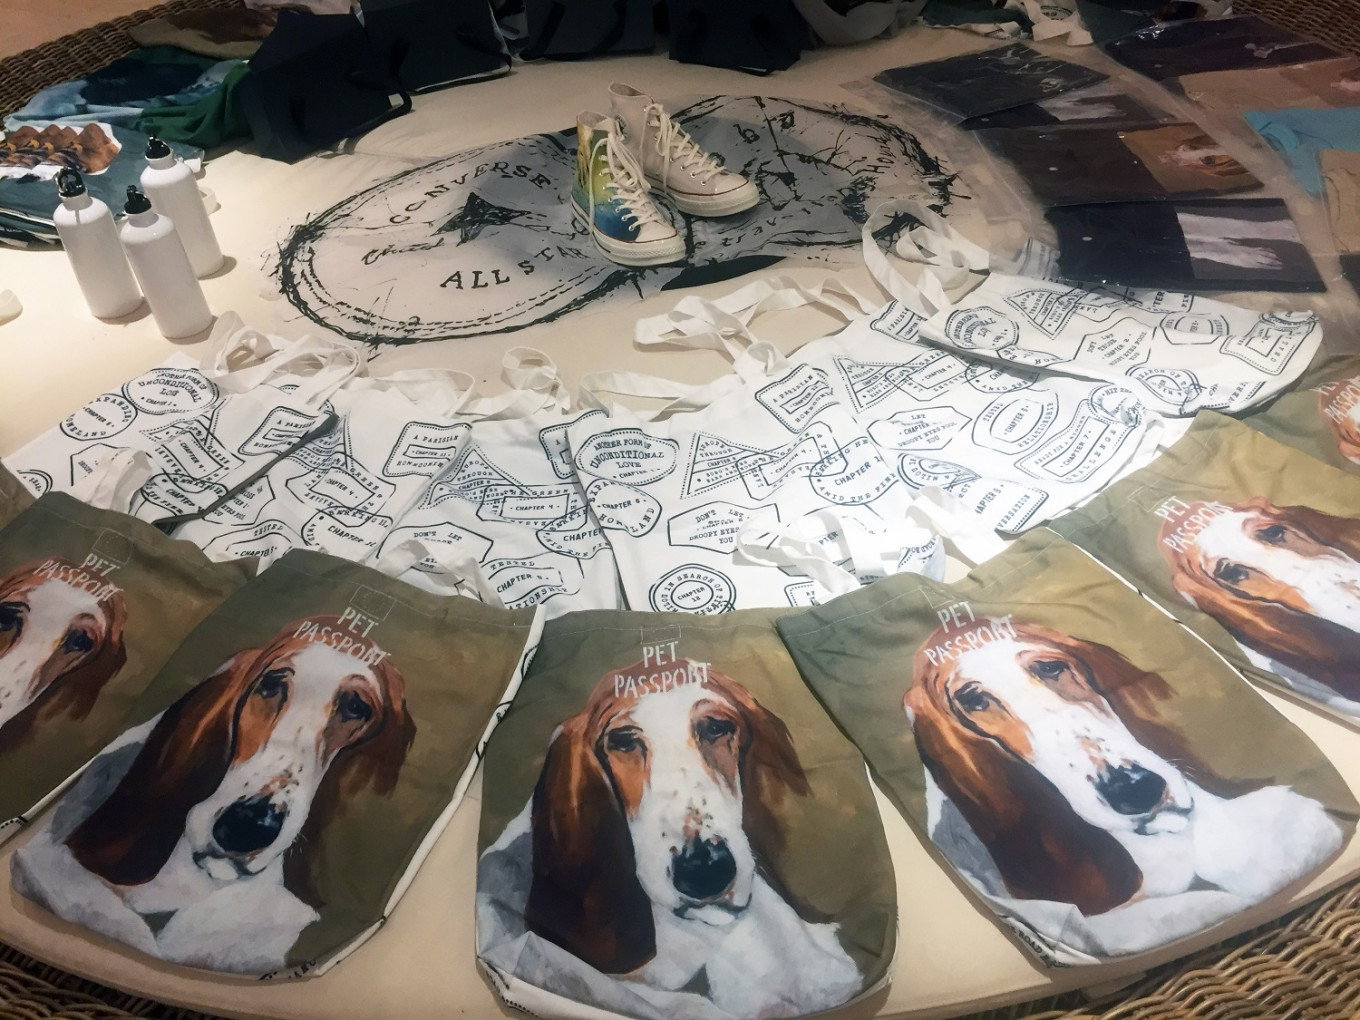 Hanafi's artworks adorn 'Bobo: The Traveling Hound' merchandise.